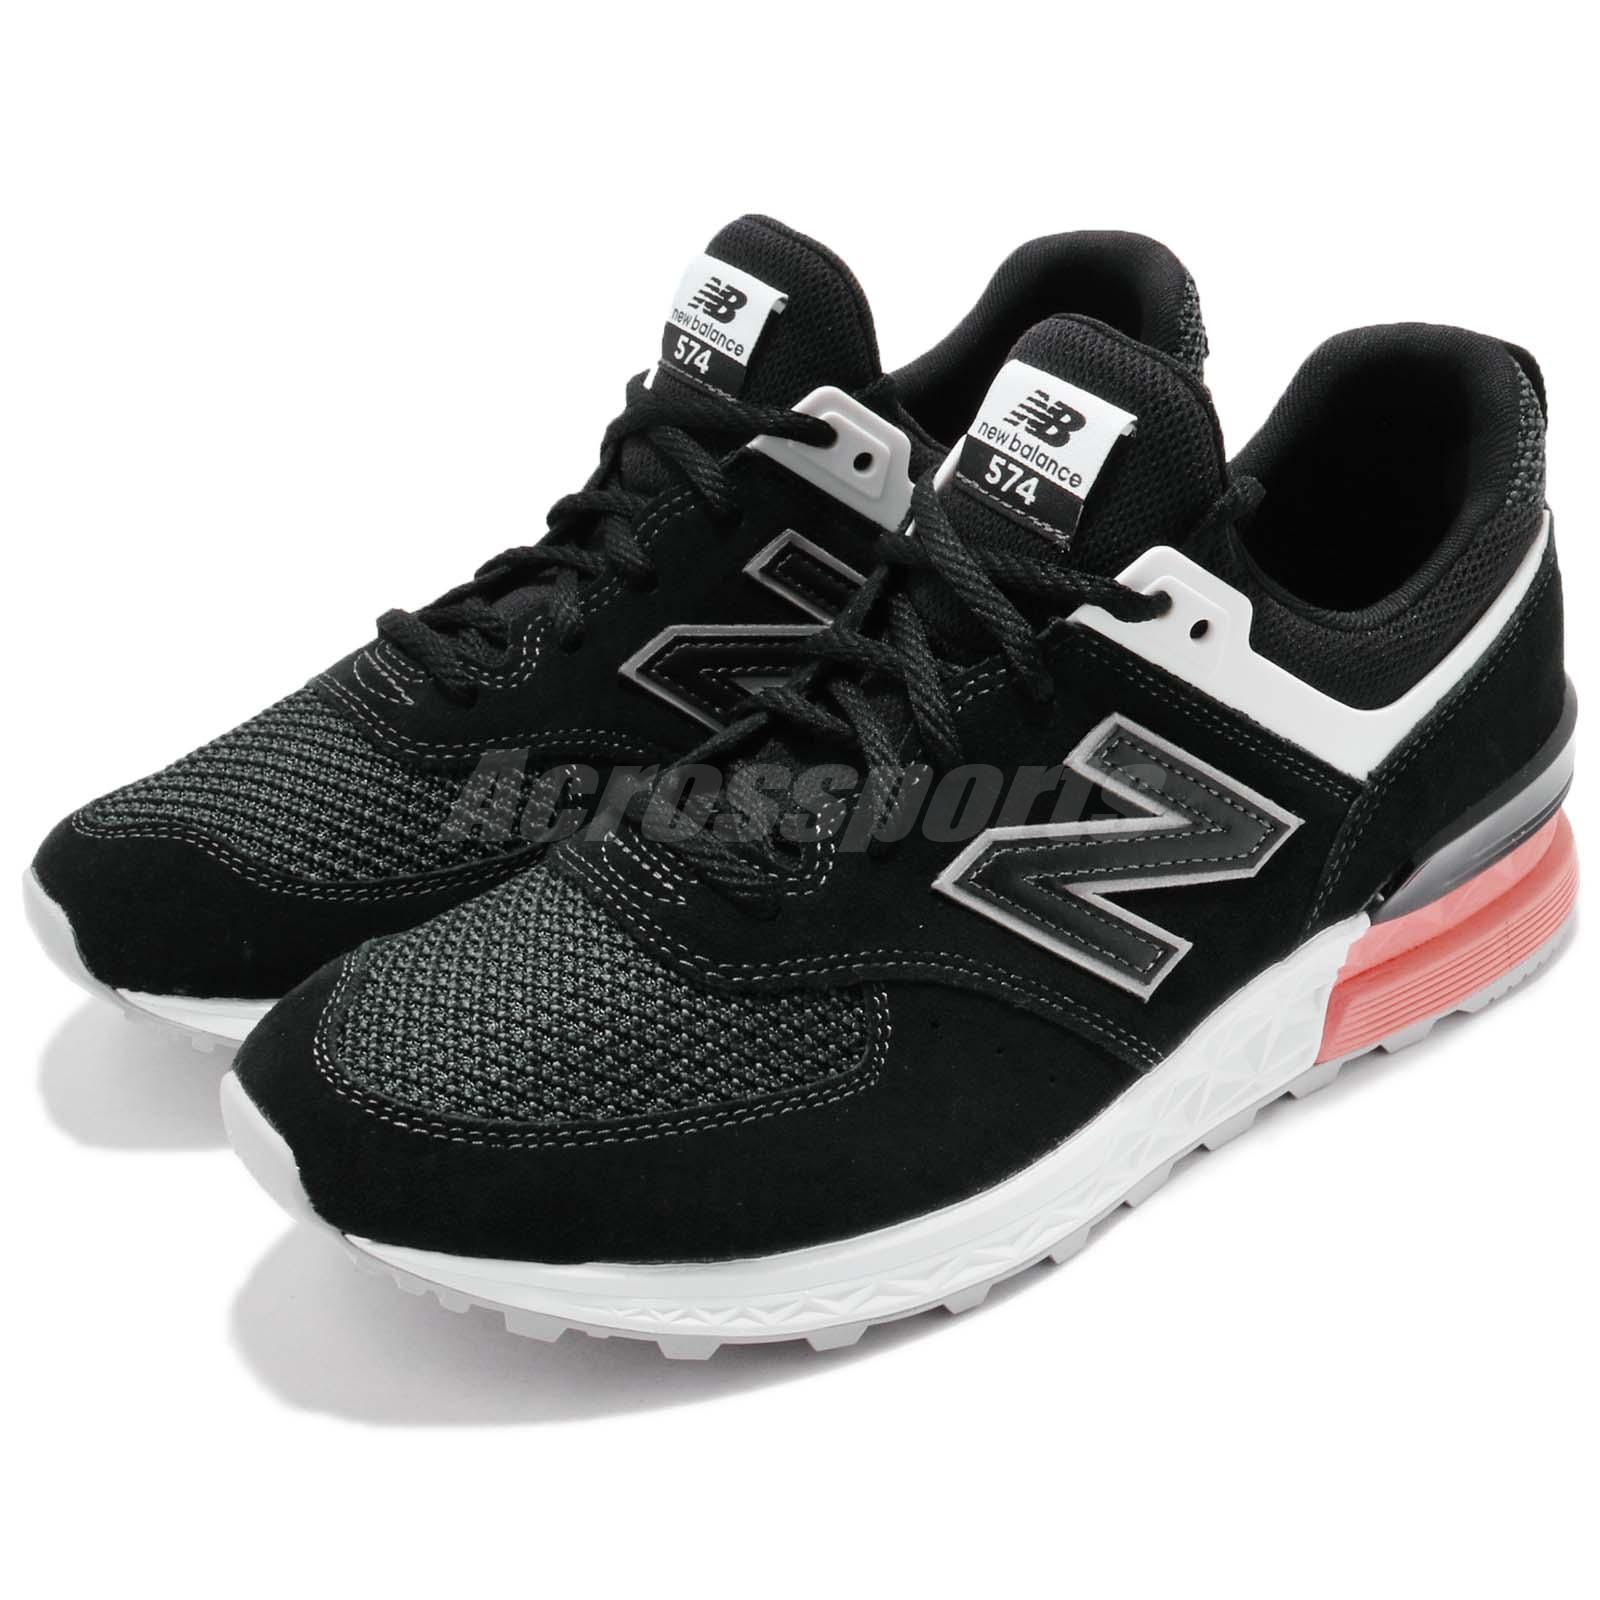 afb71a69a3d ... release date new balance ms574stk d black dusted peach pink men running  shoes 446df f7077